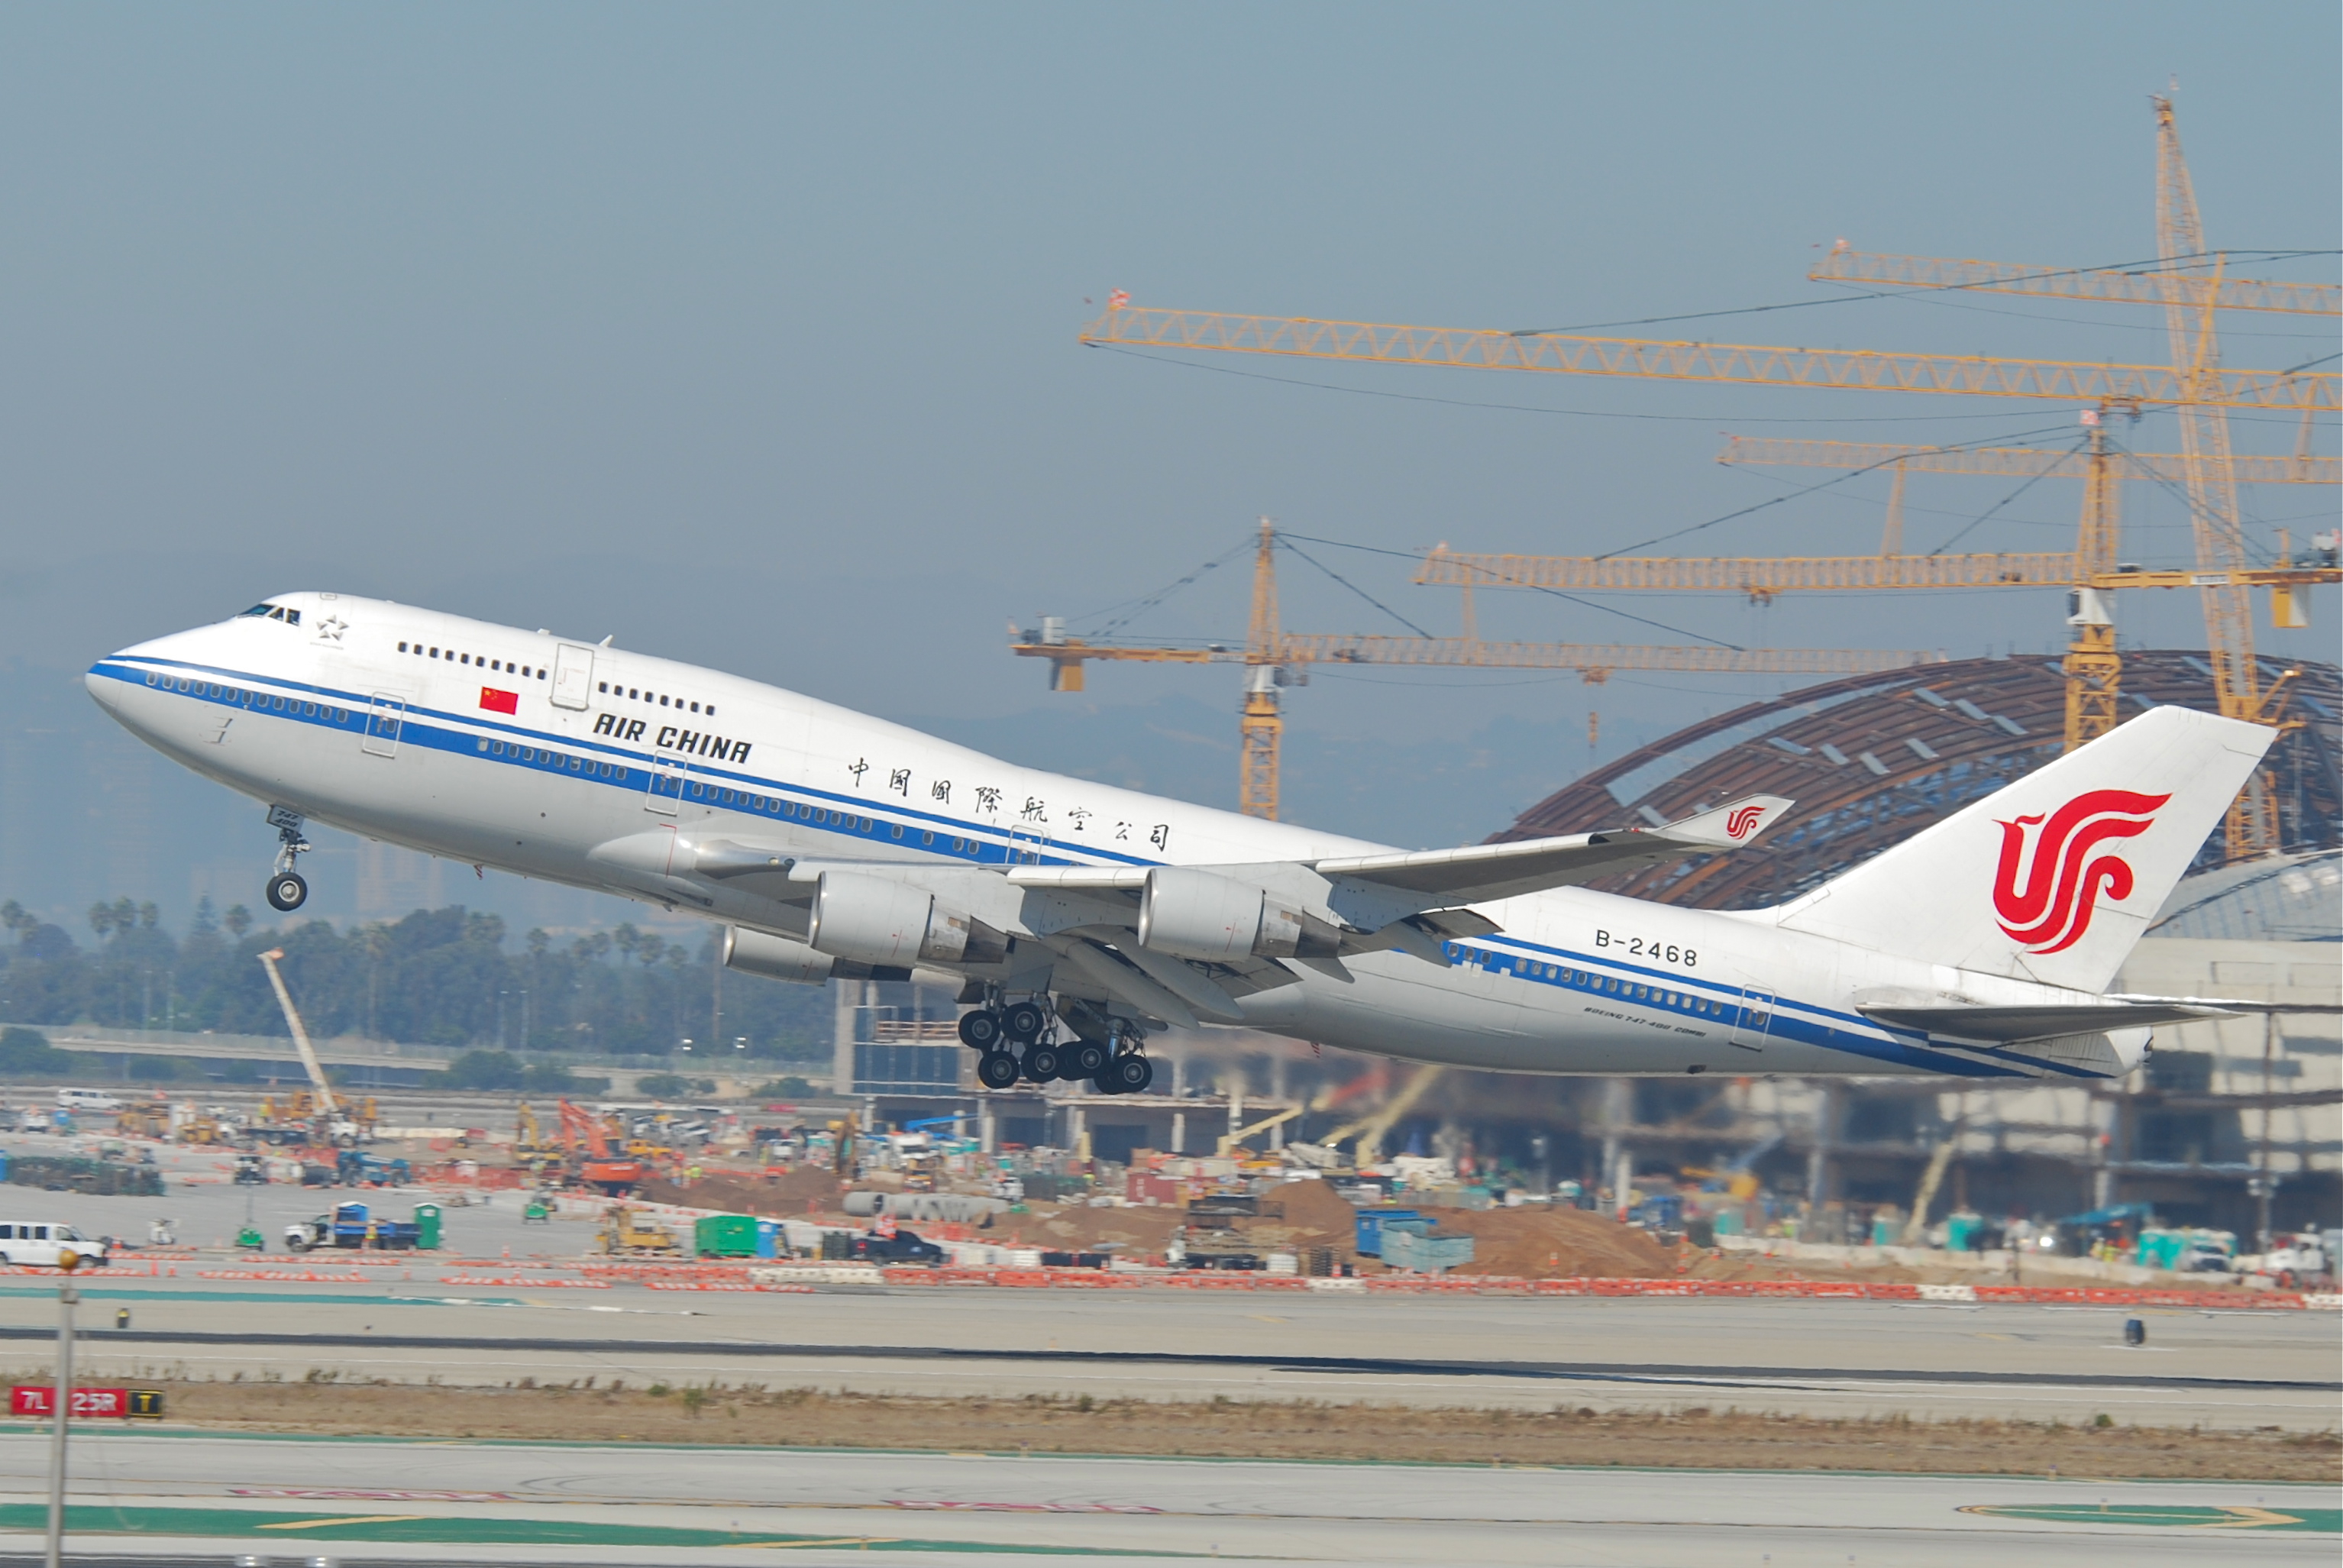 File:Air China Boeing 747-400; [emailprotected];11.10